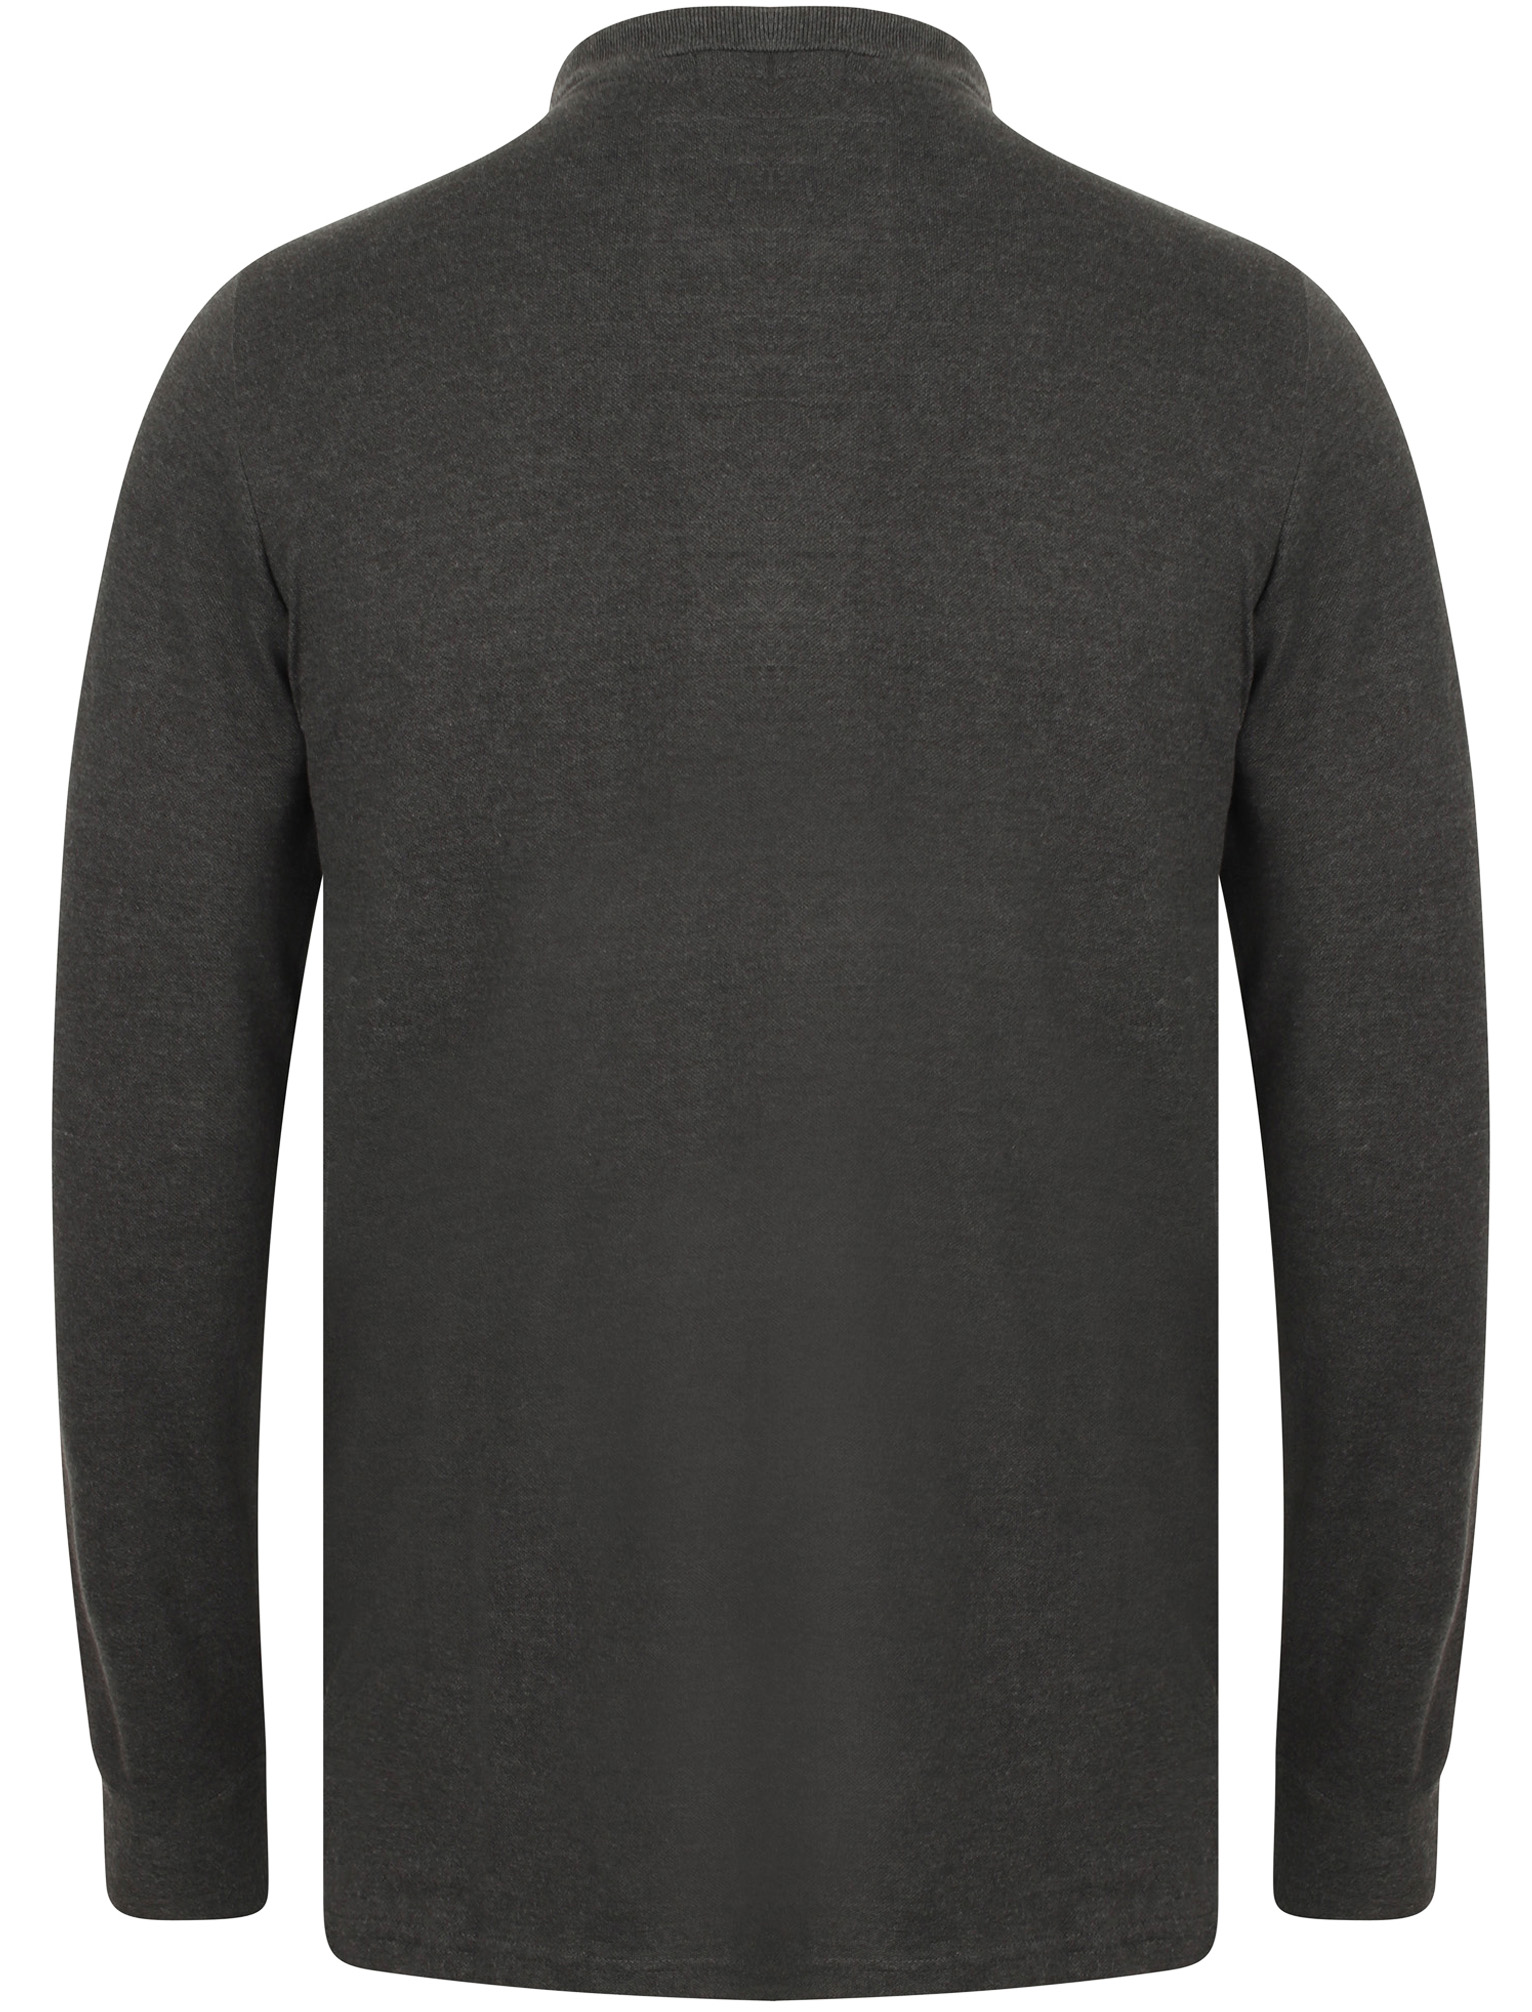 Tokyo-Laundry-Men-039-s-Cosenza-Long-Sleeve-Polo-Shirt-Top-Size-S-M-L-XL-XXL thumbnail 7